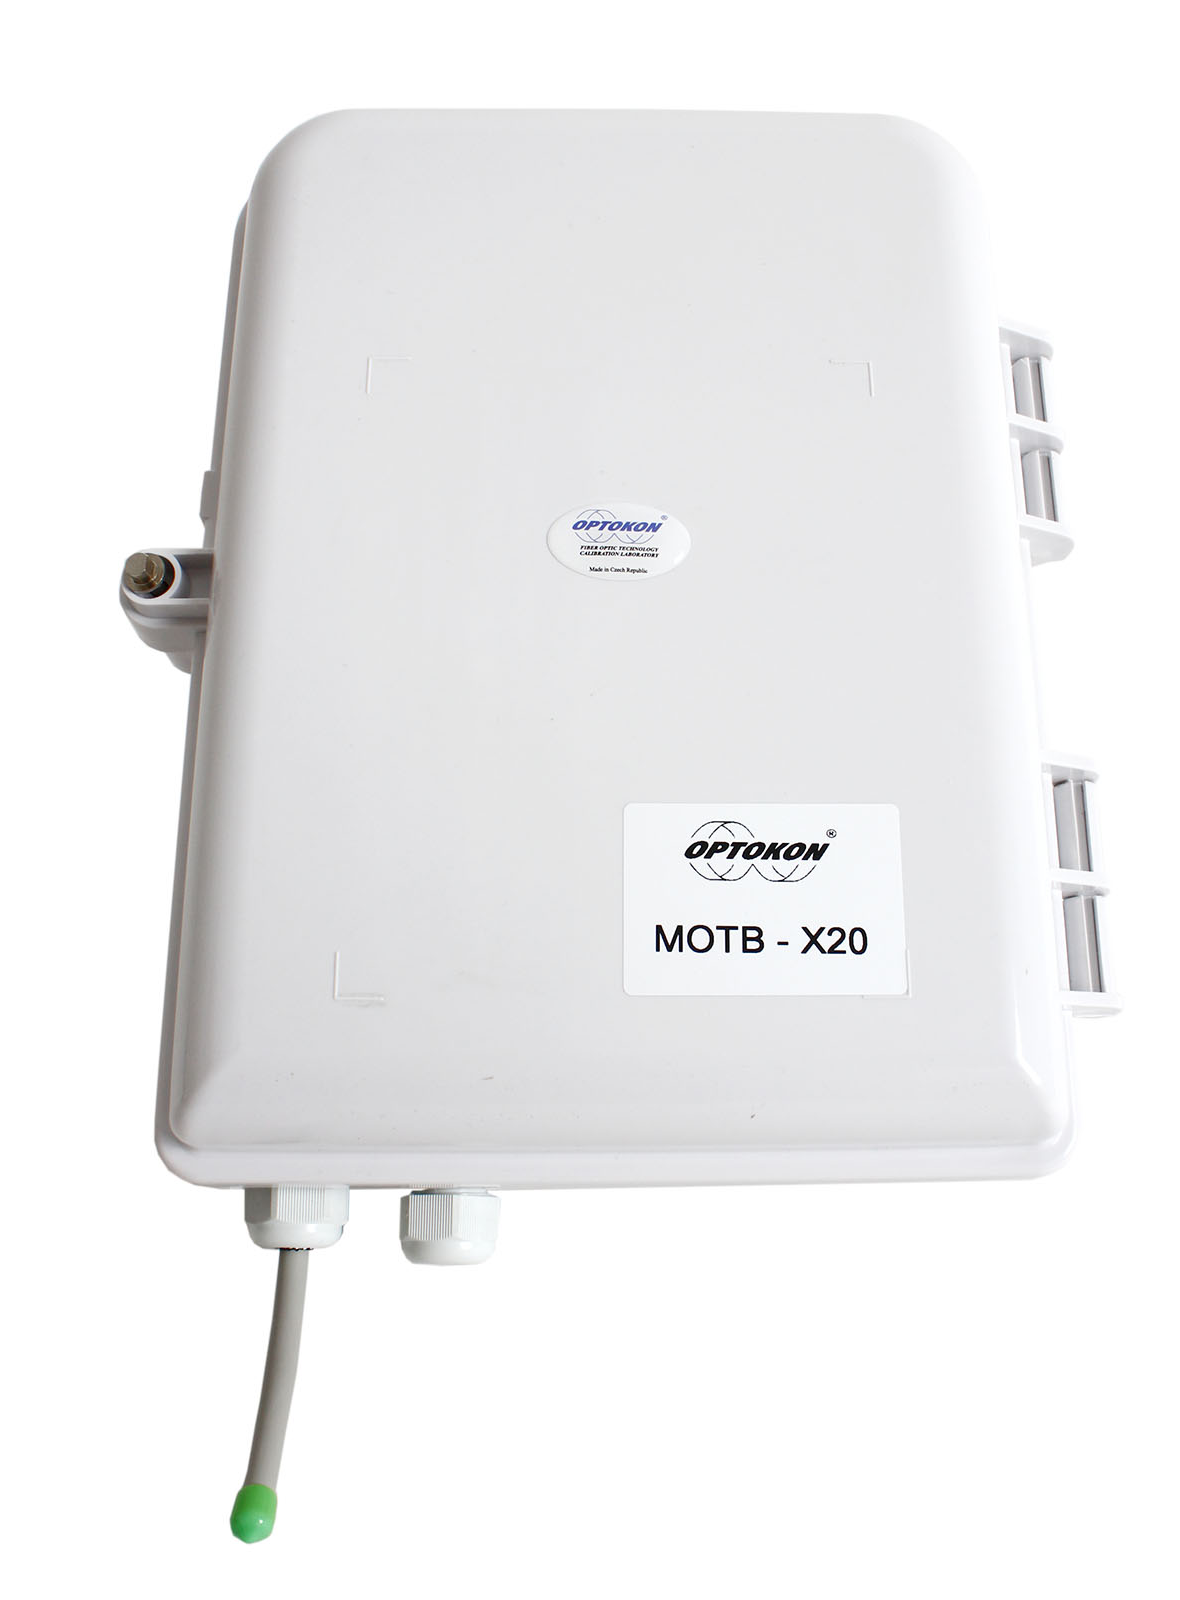 MOTB-X20 Wall mount Distribution Box